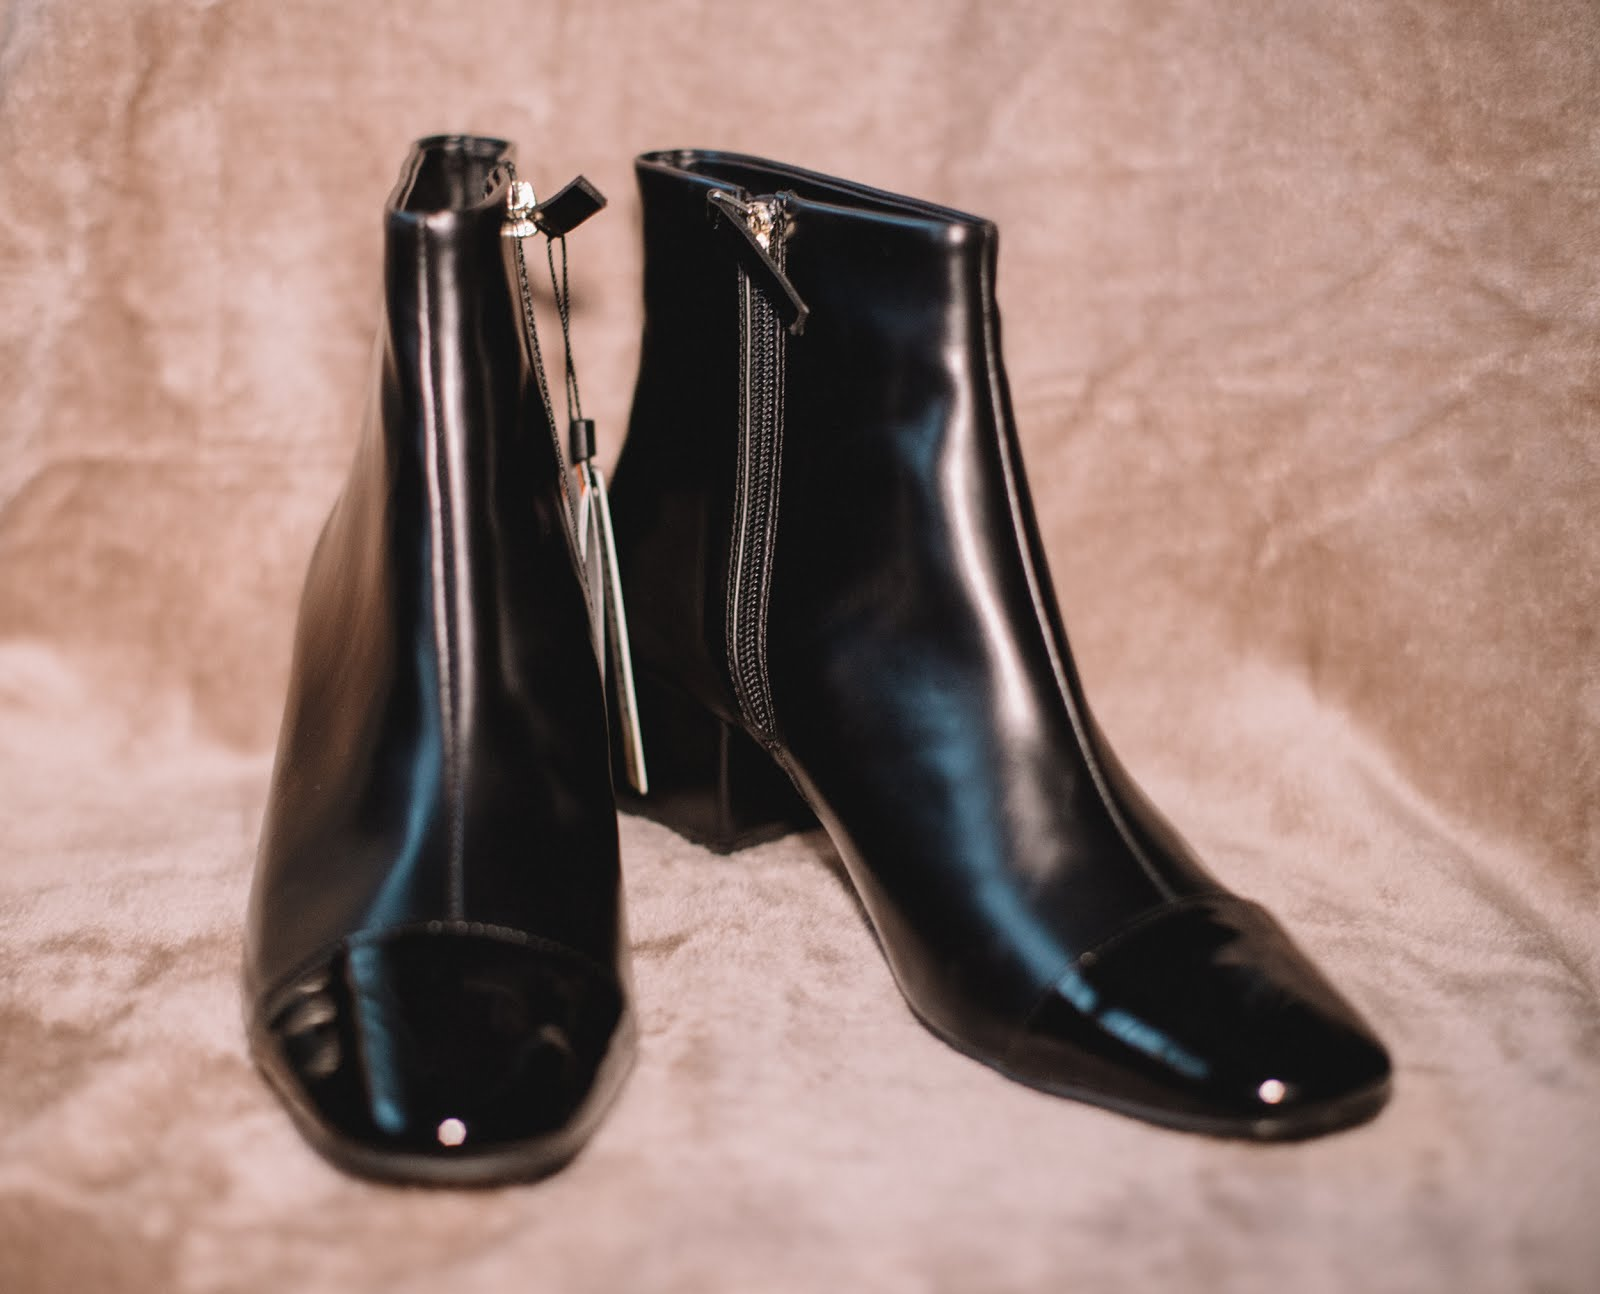 zara botins ankle boots pretos black saldos sales the paper and ink